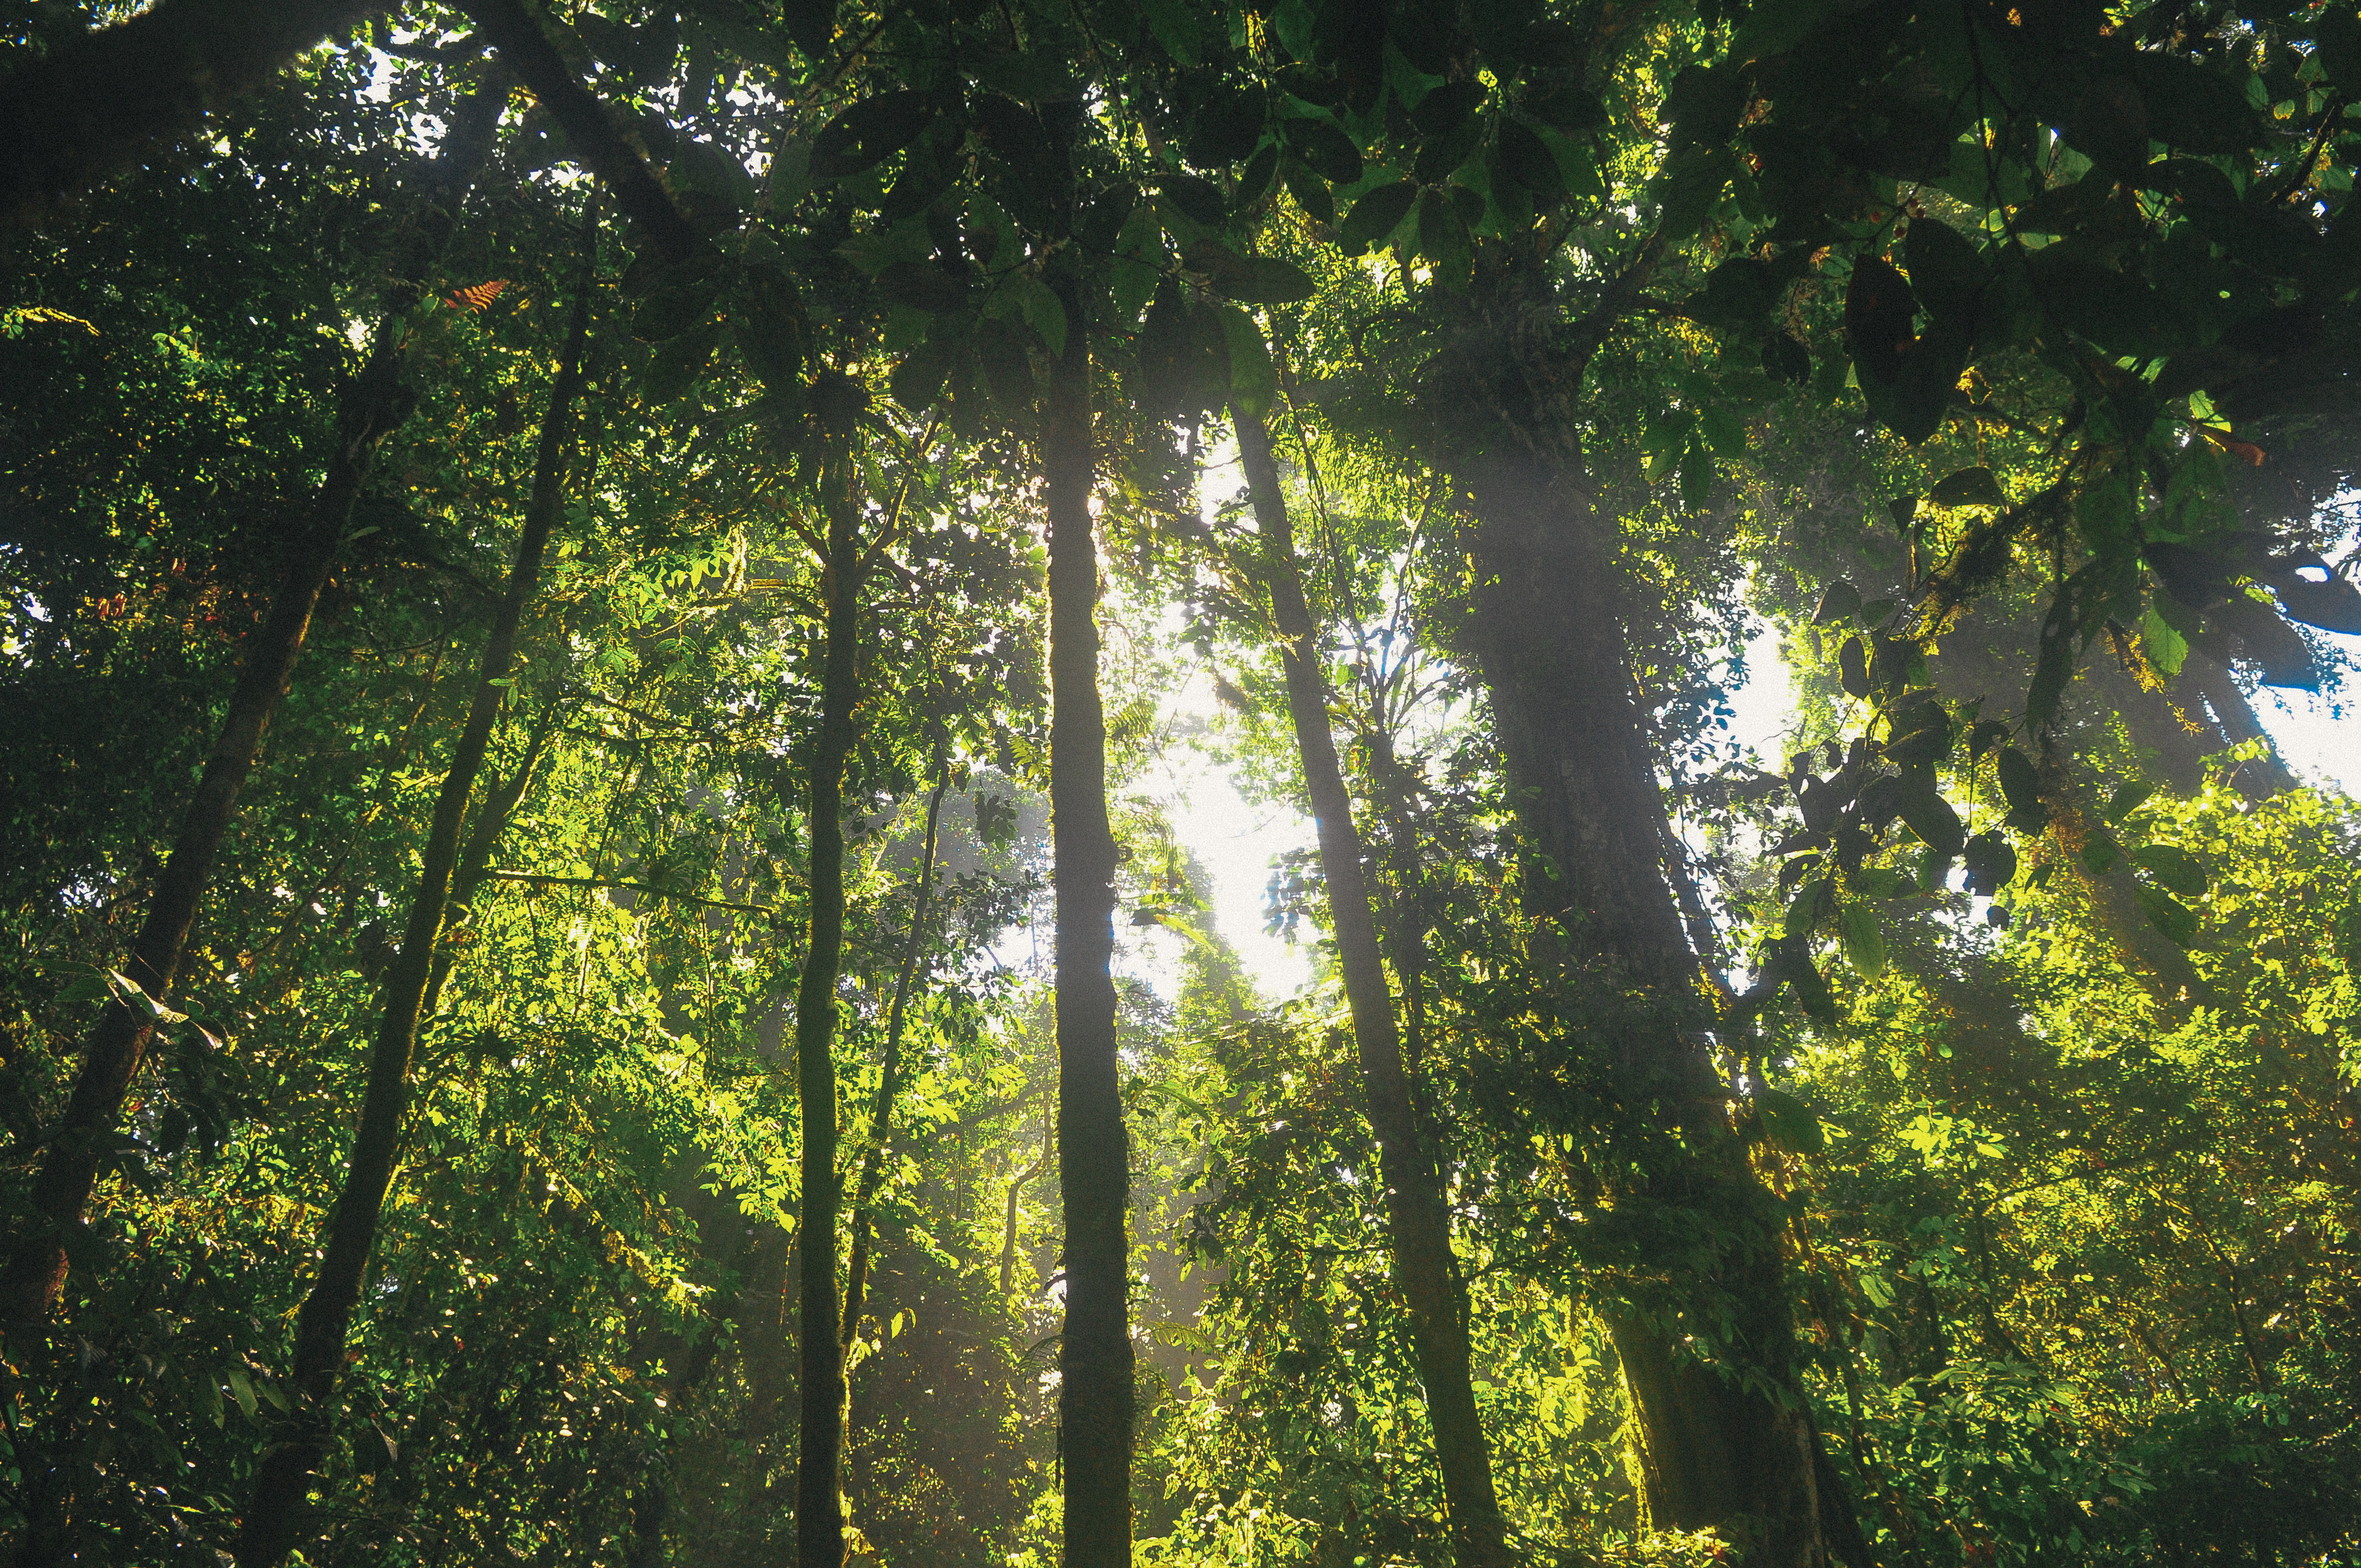 Jungle Trees With Lots Of Green And Bright Sun